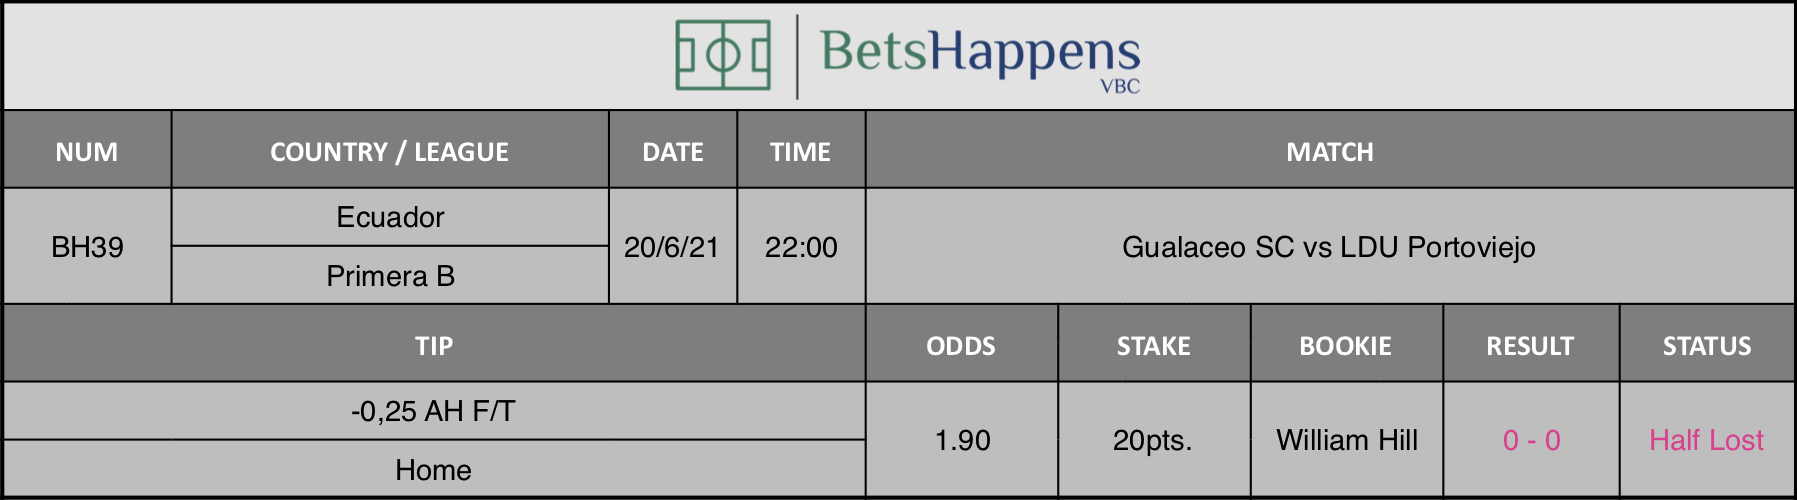 Results of our tip for the Gualaceo SC vs LDU Portoviejo match -0,25 AH F/T Home is recommended.